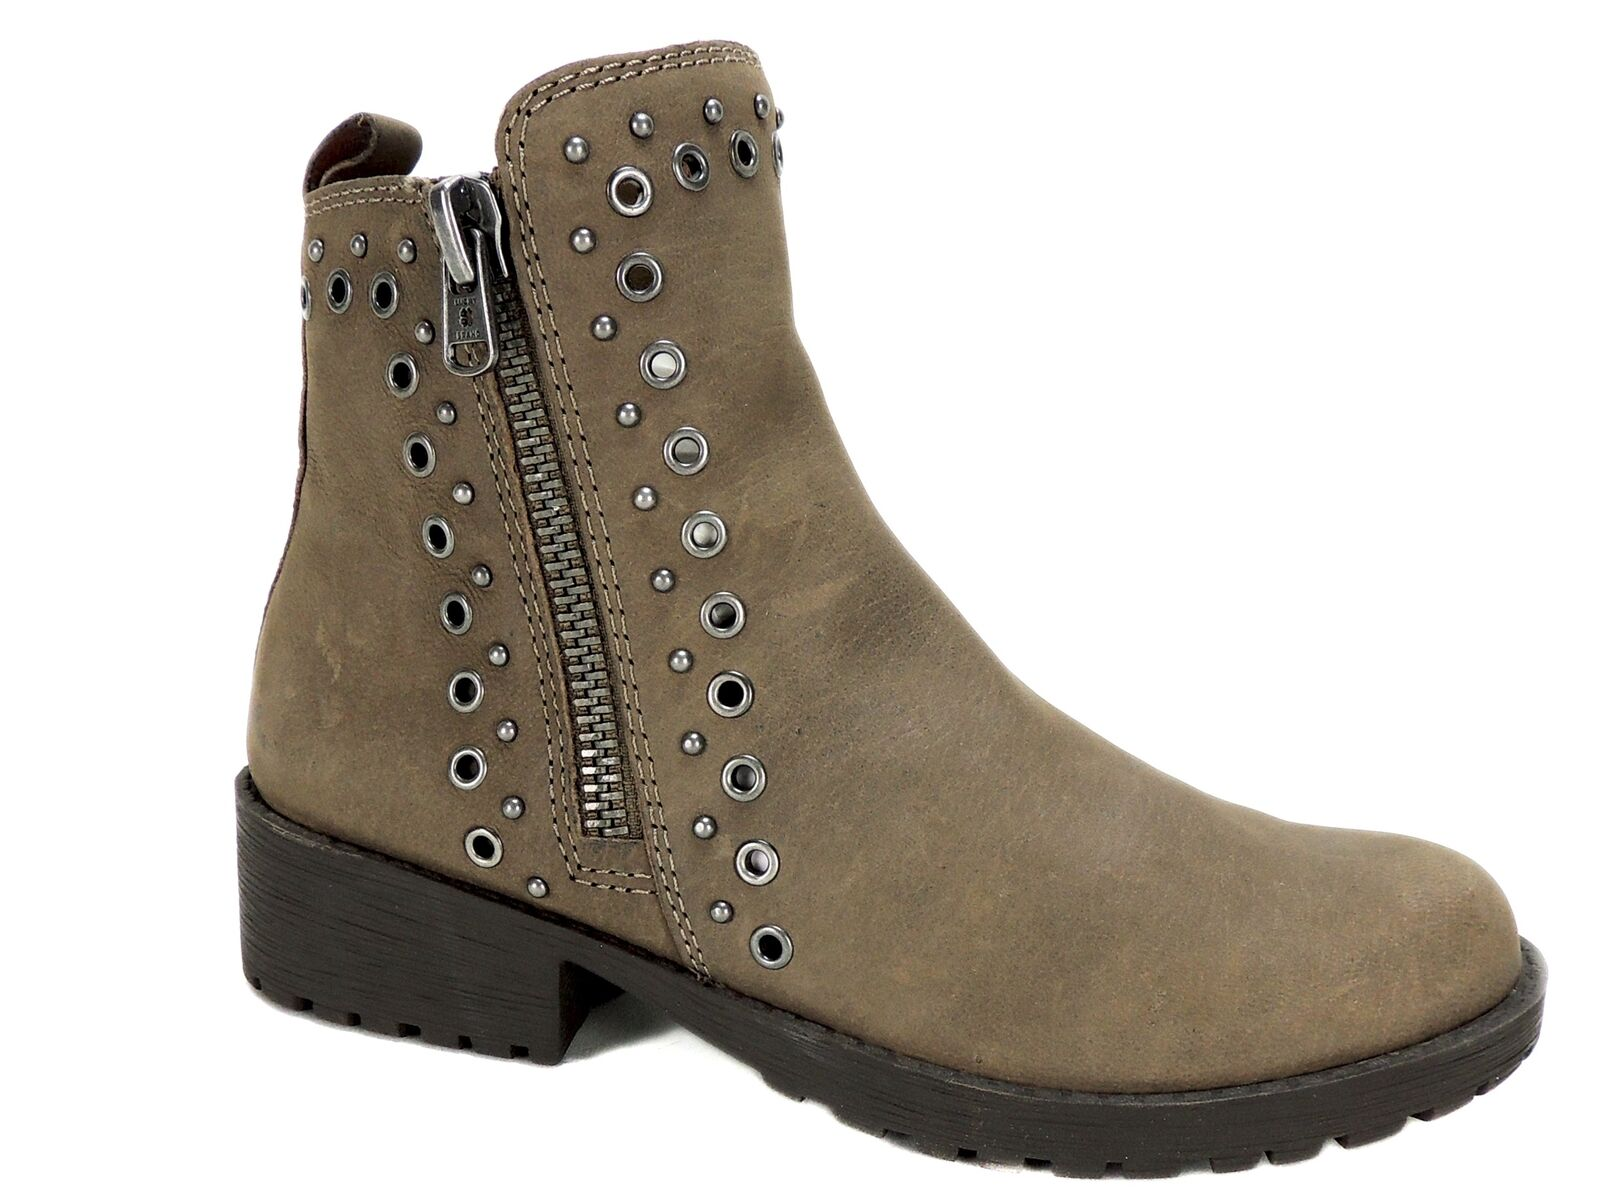 Lucky Brand Women's Hannie Booties Brindle Bridgetown Leather Size 5.5 M